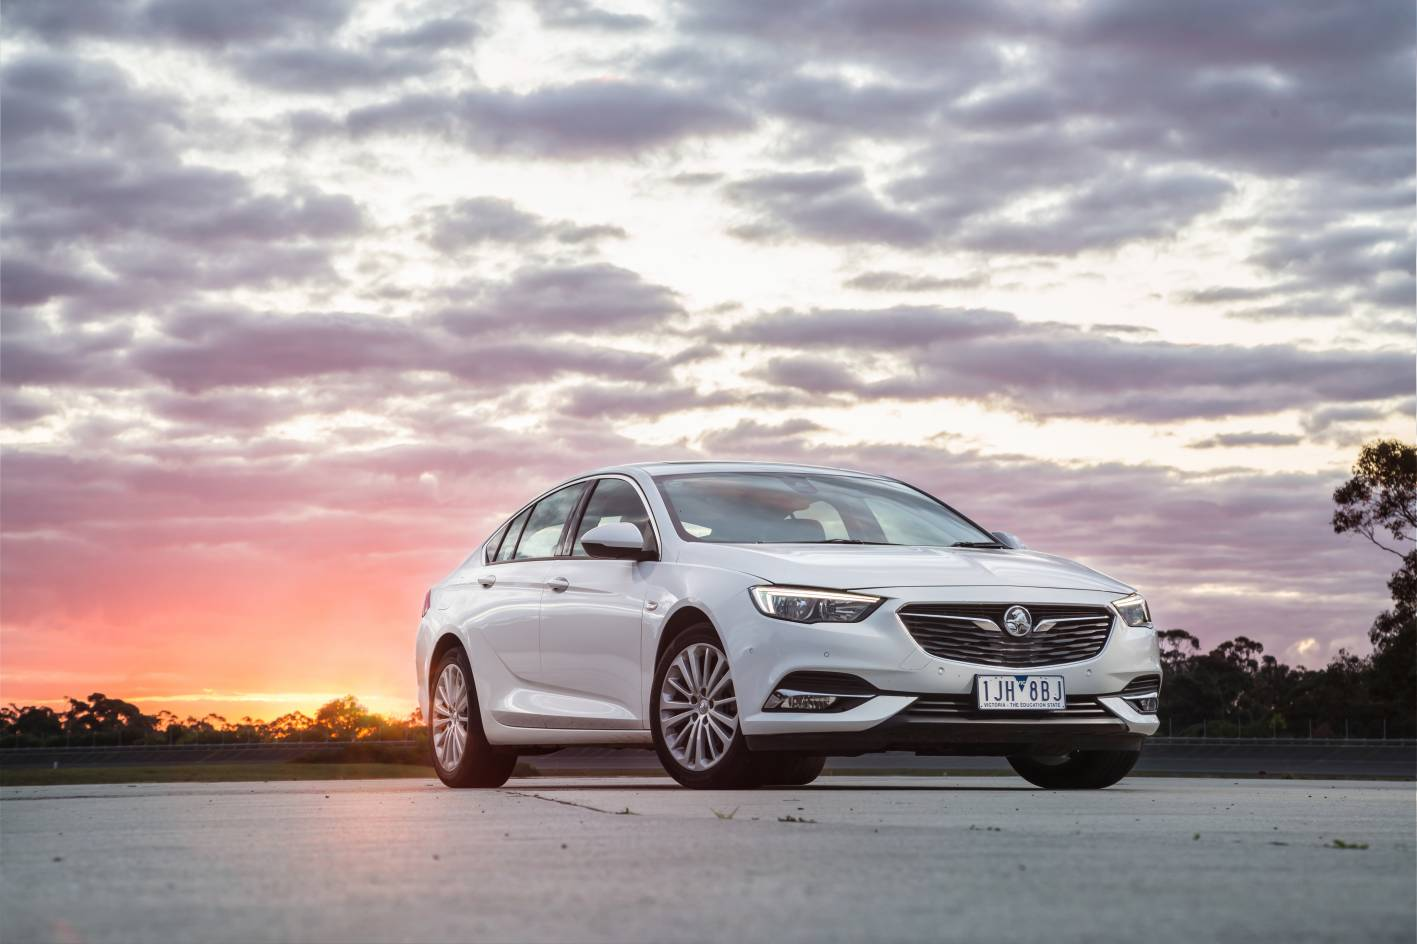 2018_holden_commodore_preview_06